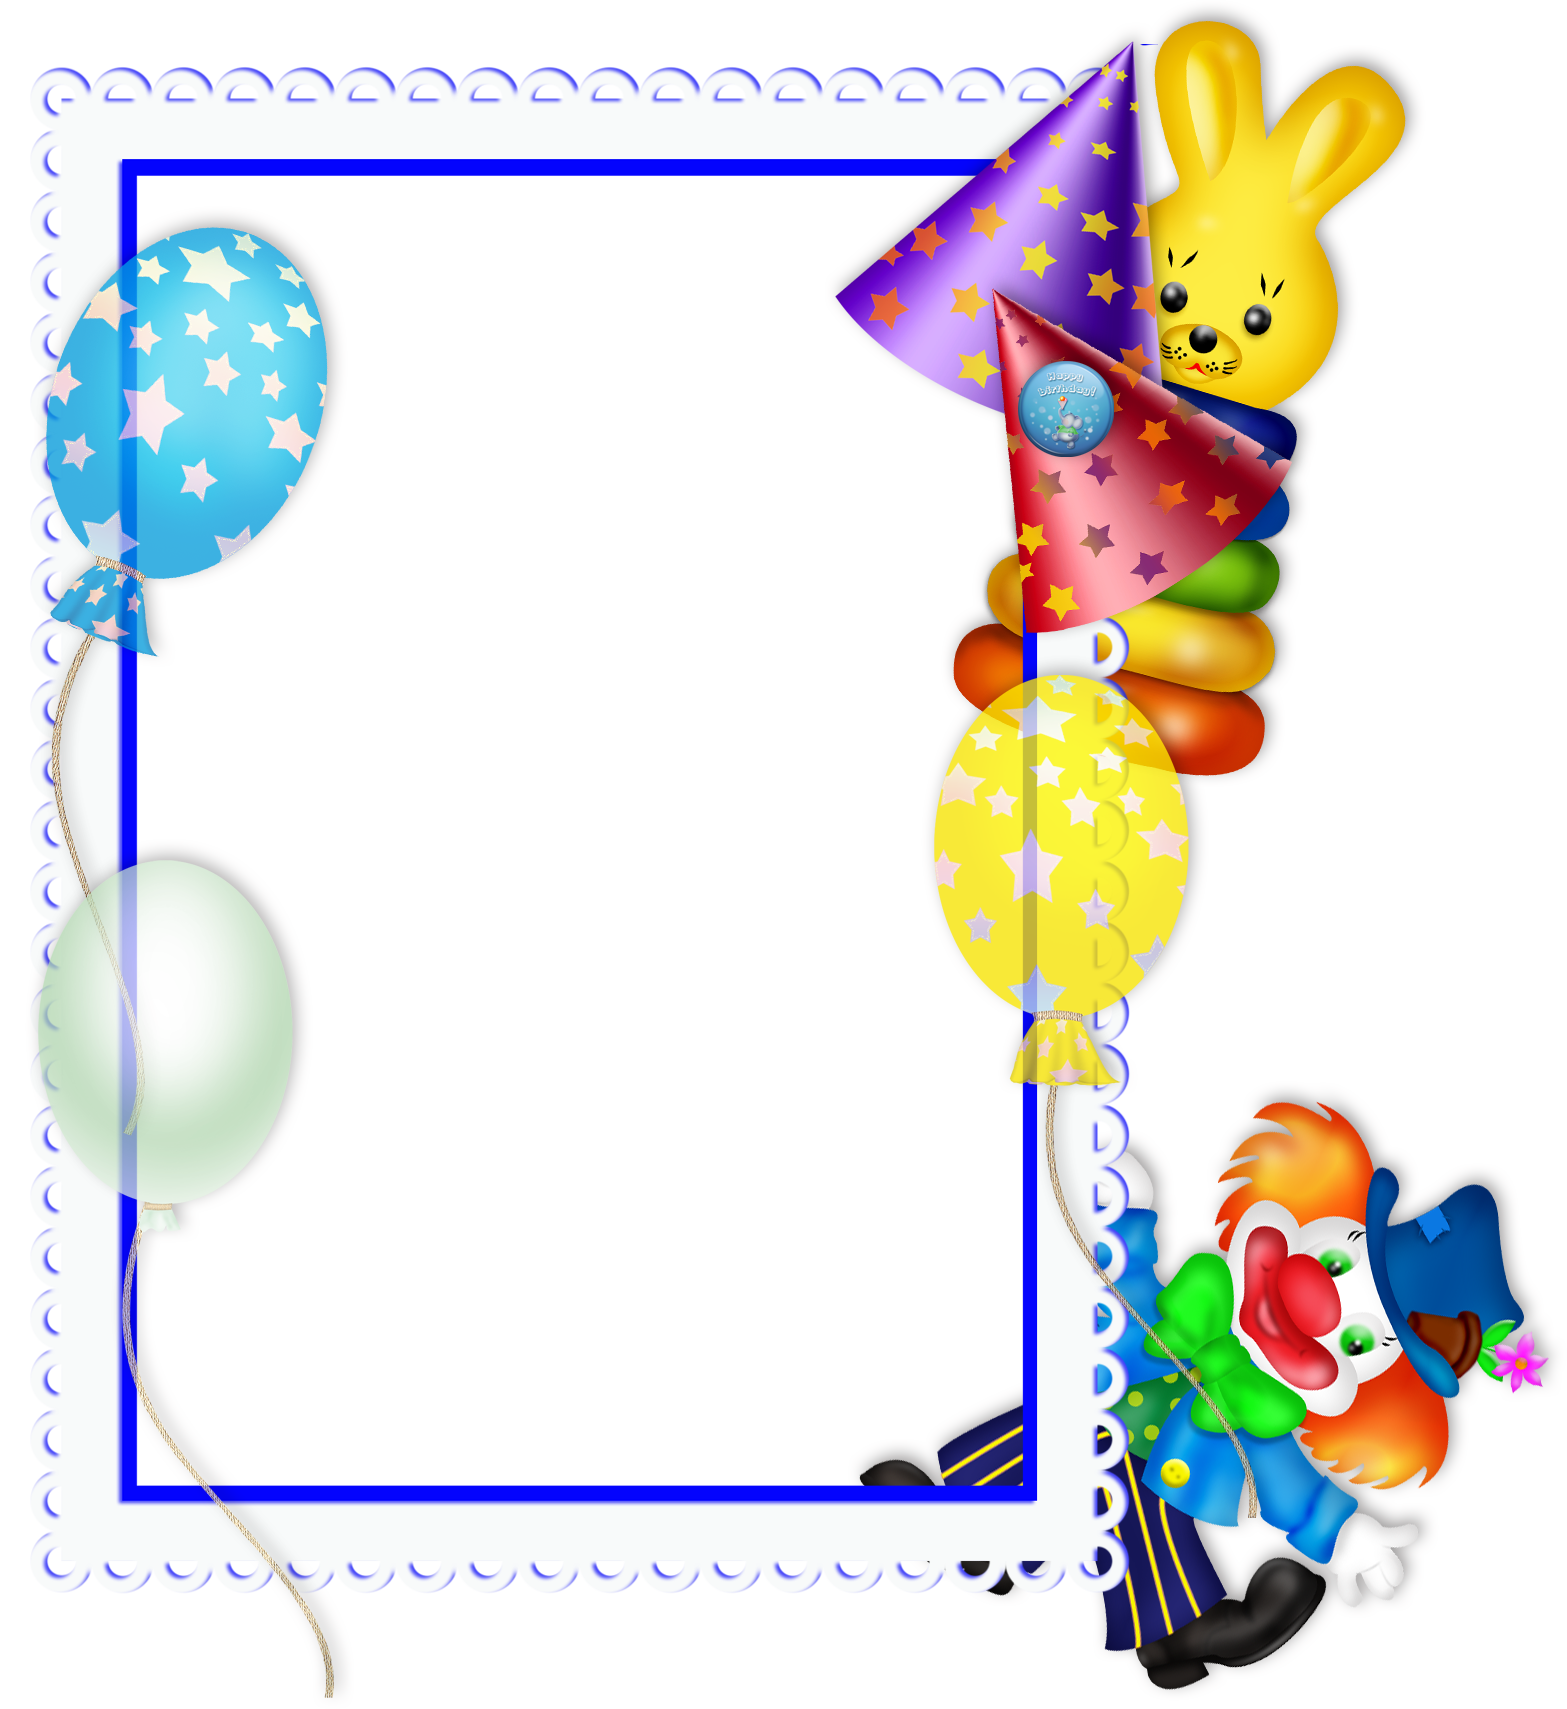 Birthday frames and borders png. Happy transparent party frame